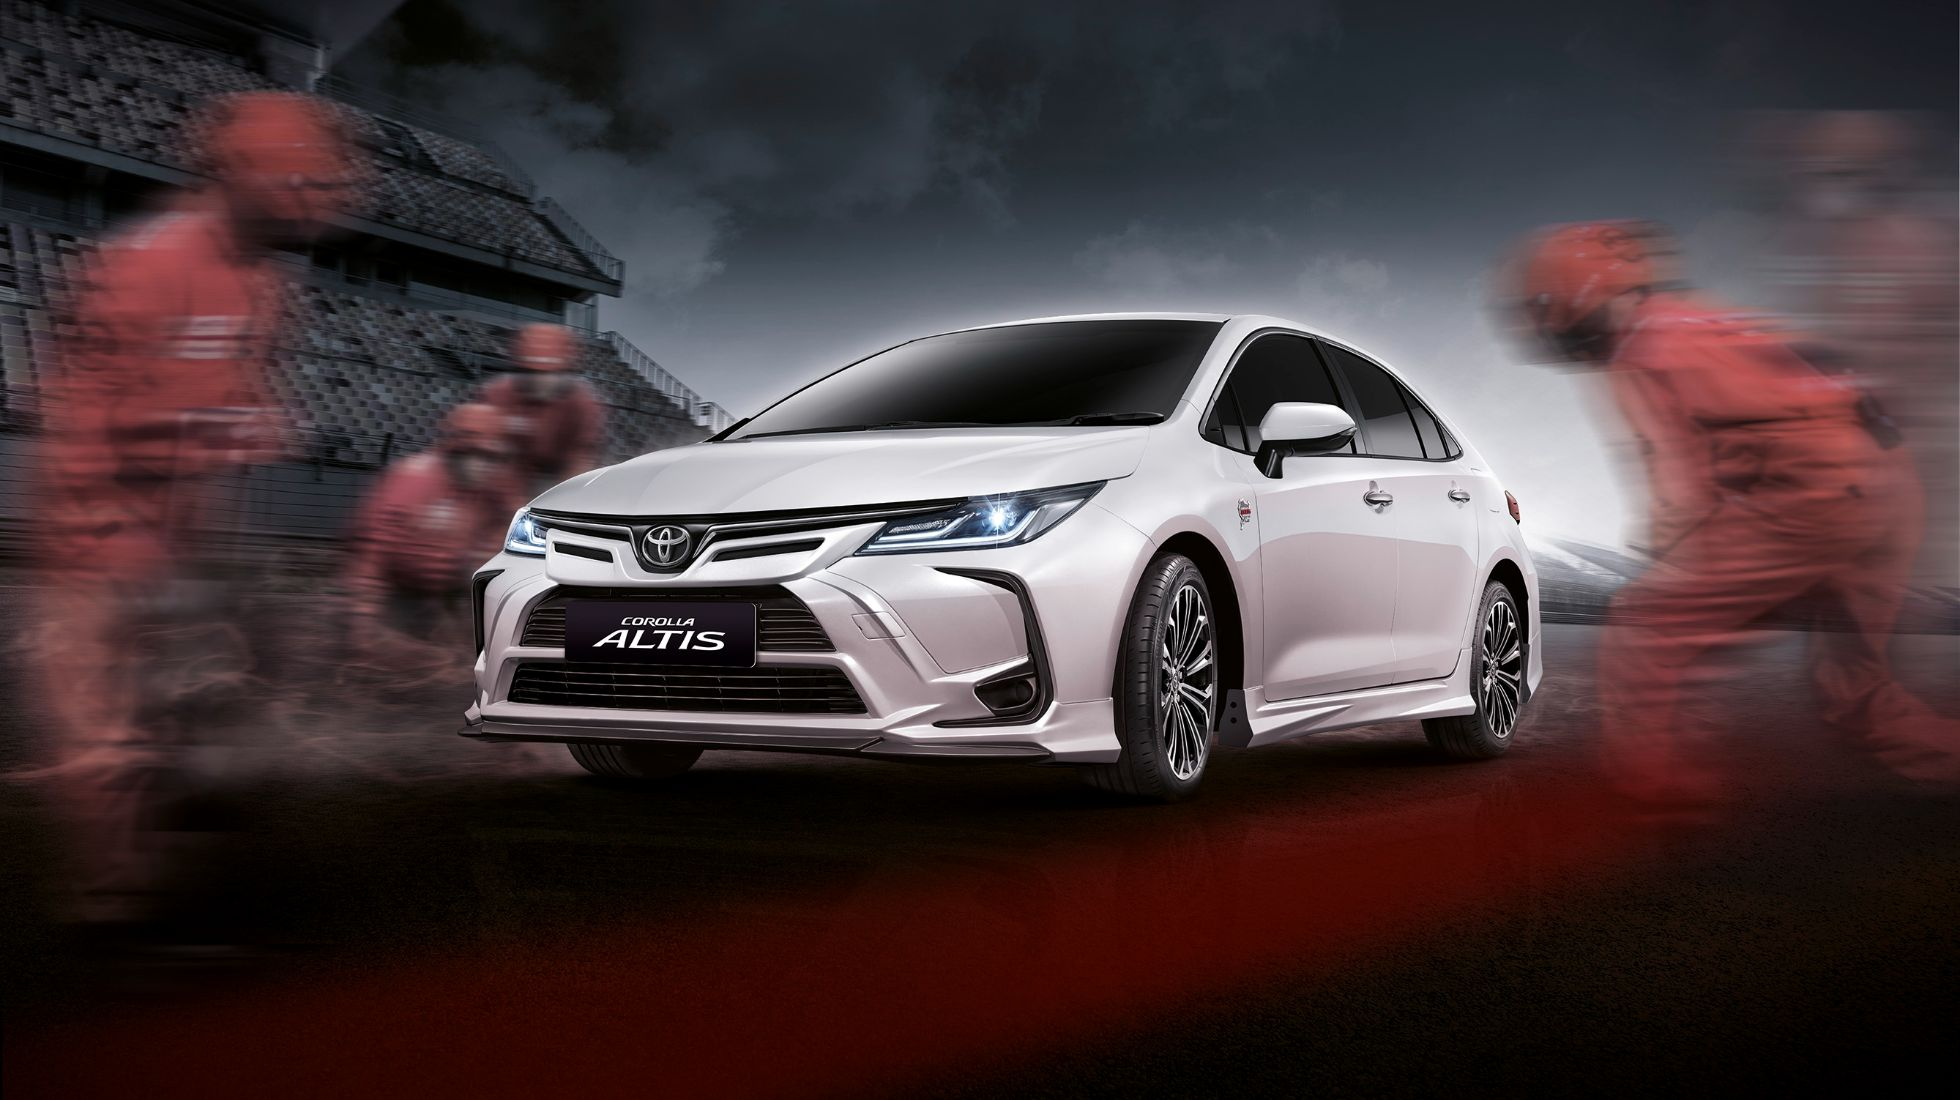 Toyota celebrates Nürburgring success with special edition